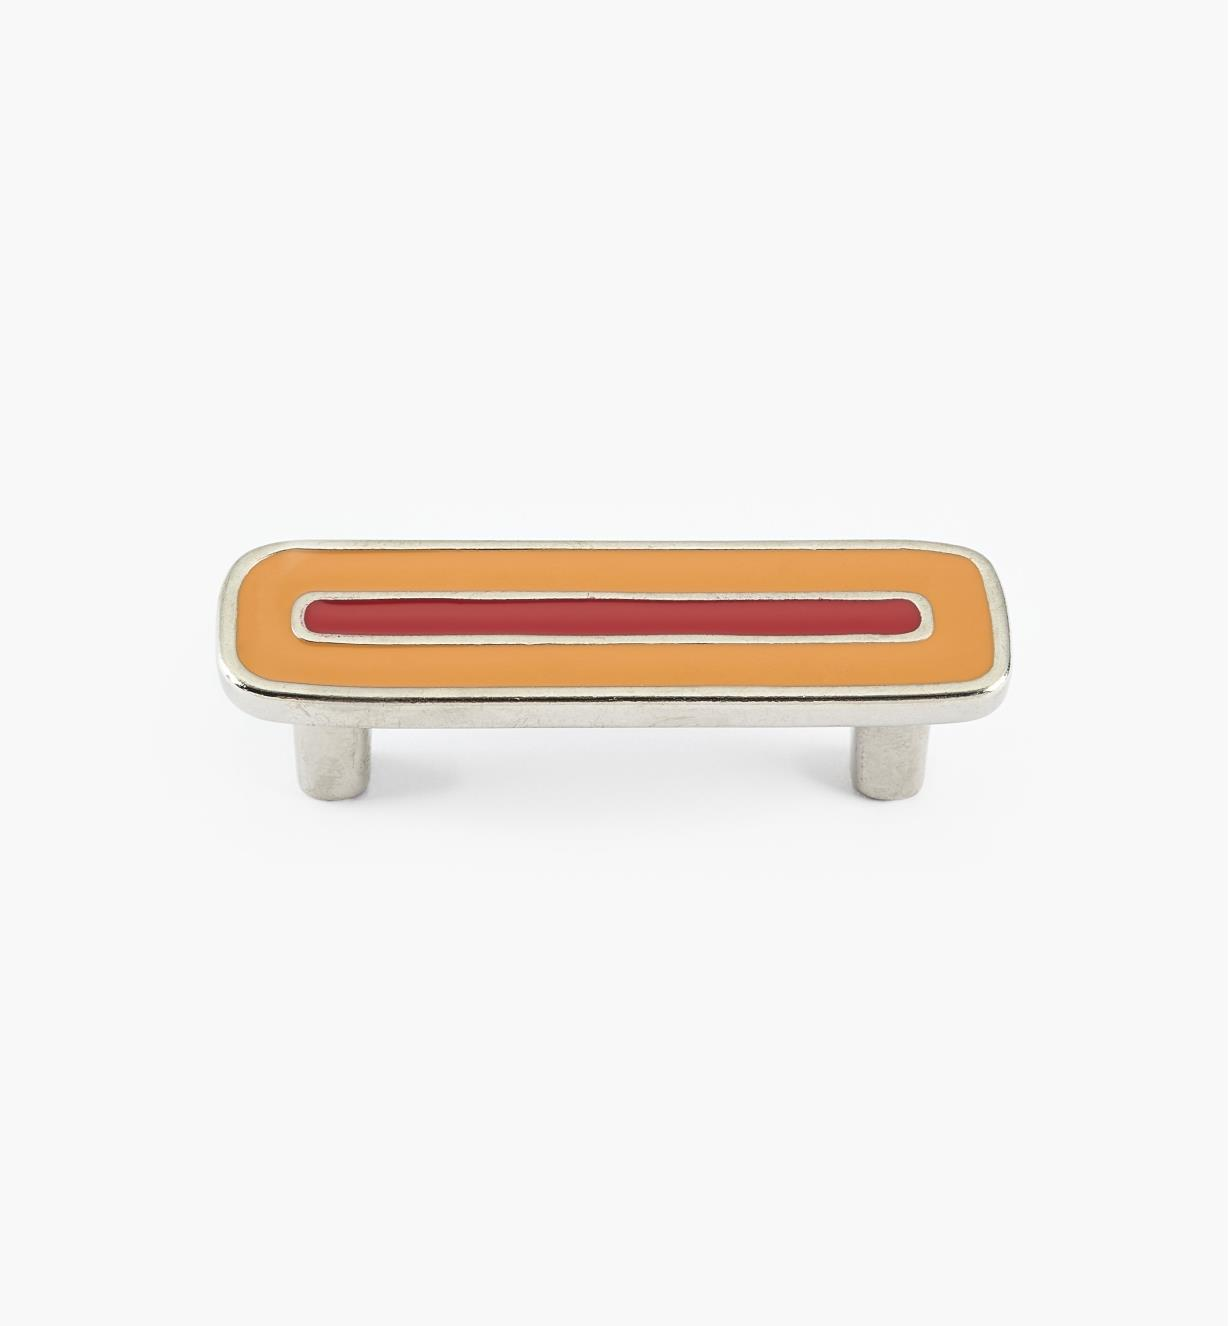 01X4352 - Enamel Infill 64mm x 90mm Small Orange/Red Handle